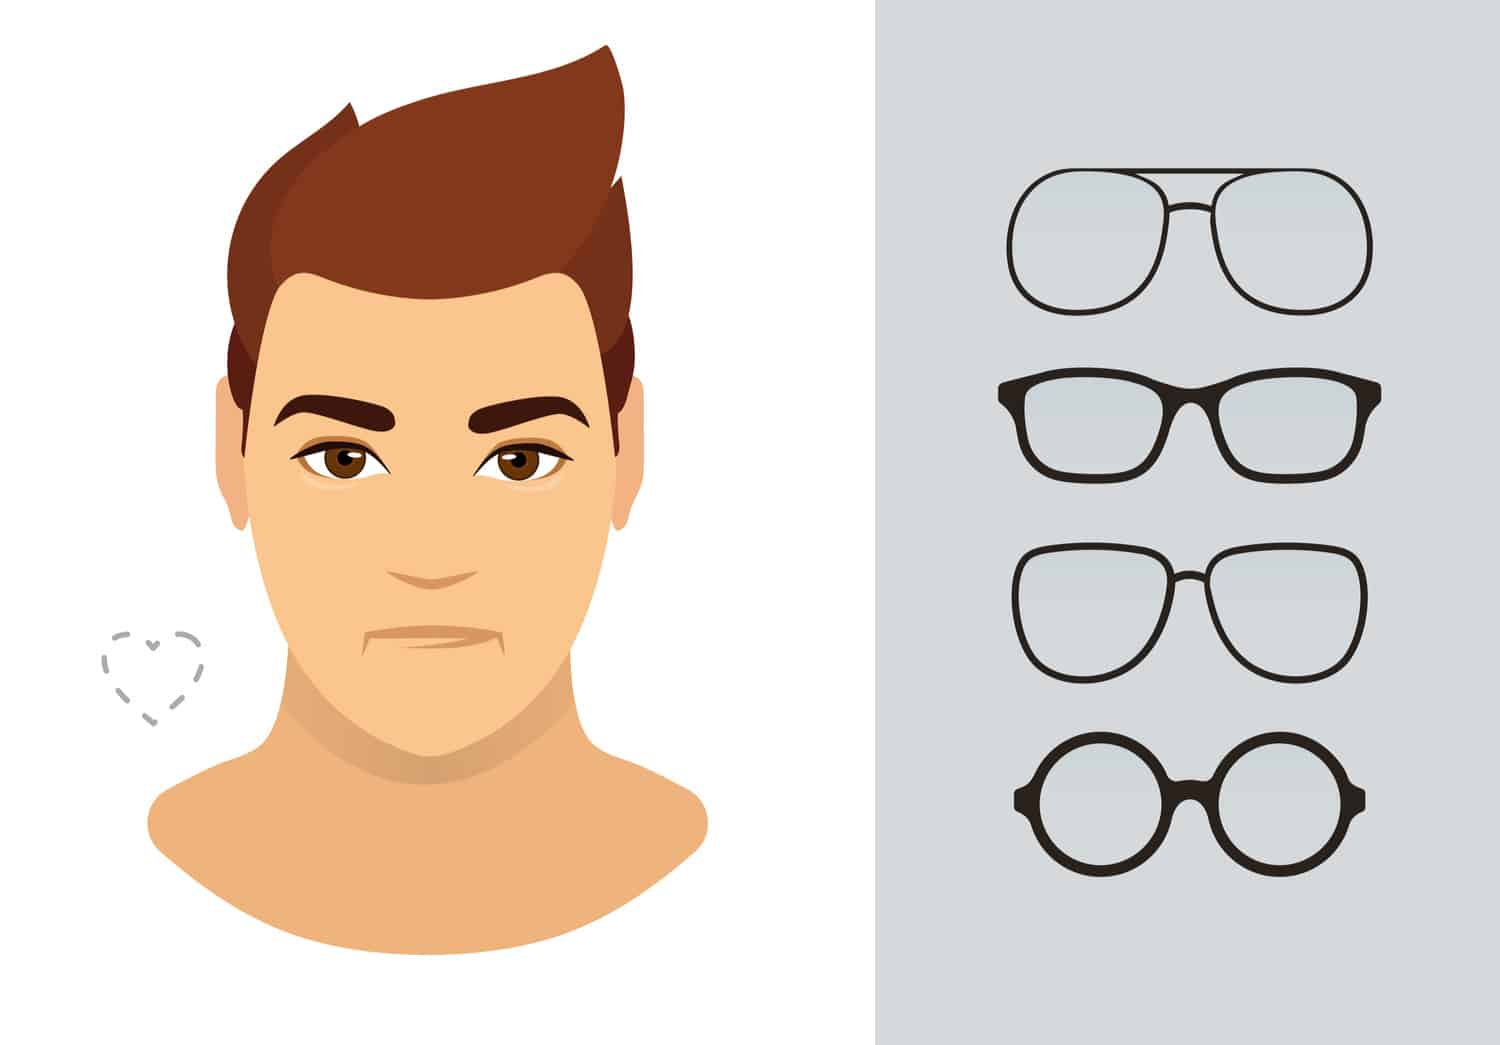 Men's glasses for heart-shaped face